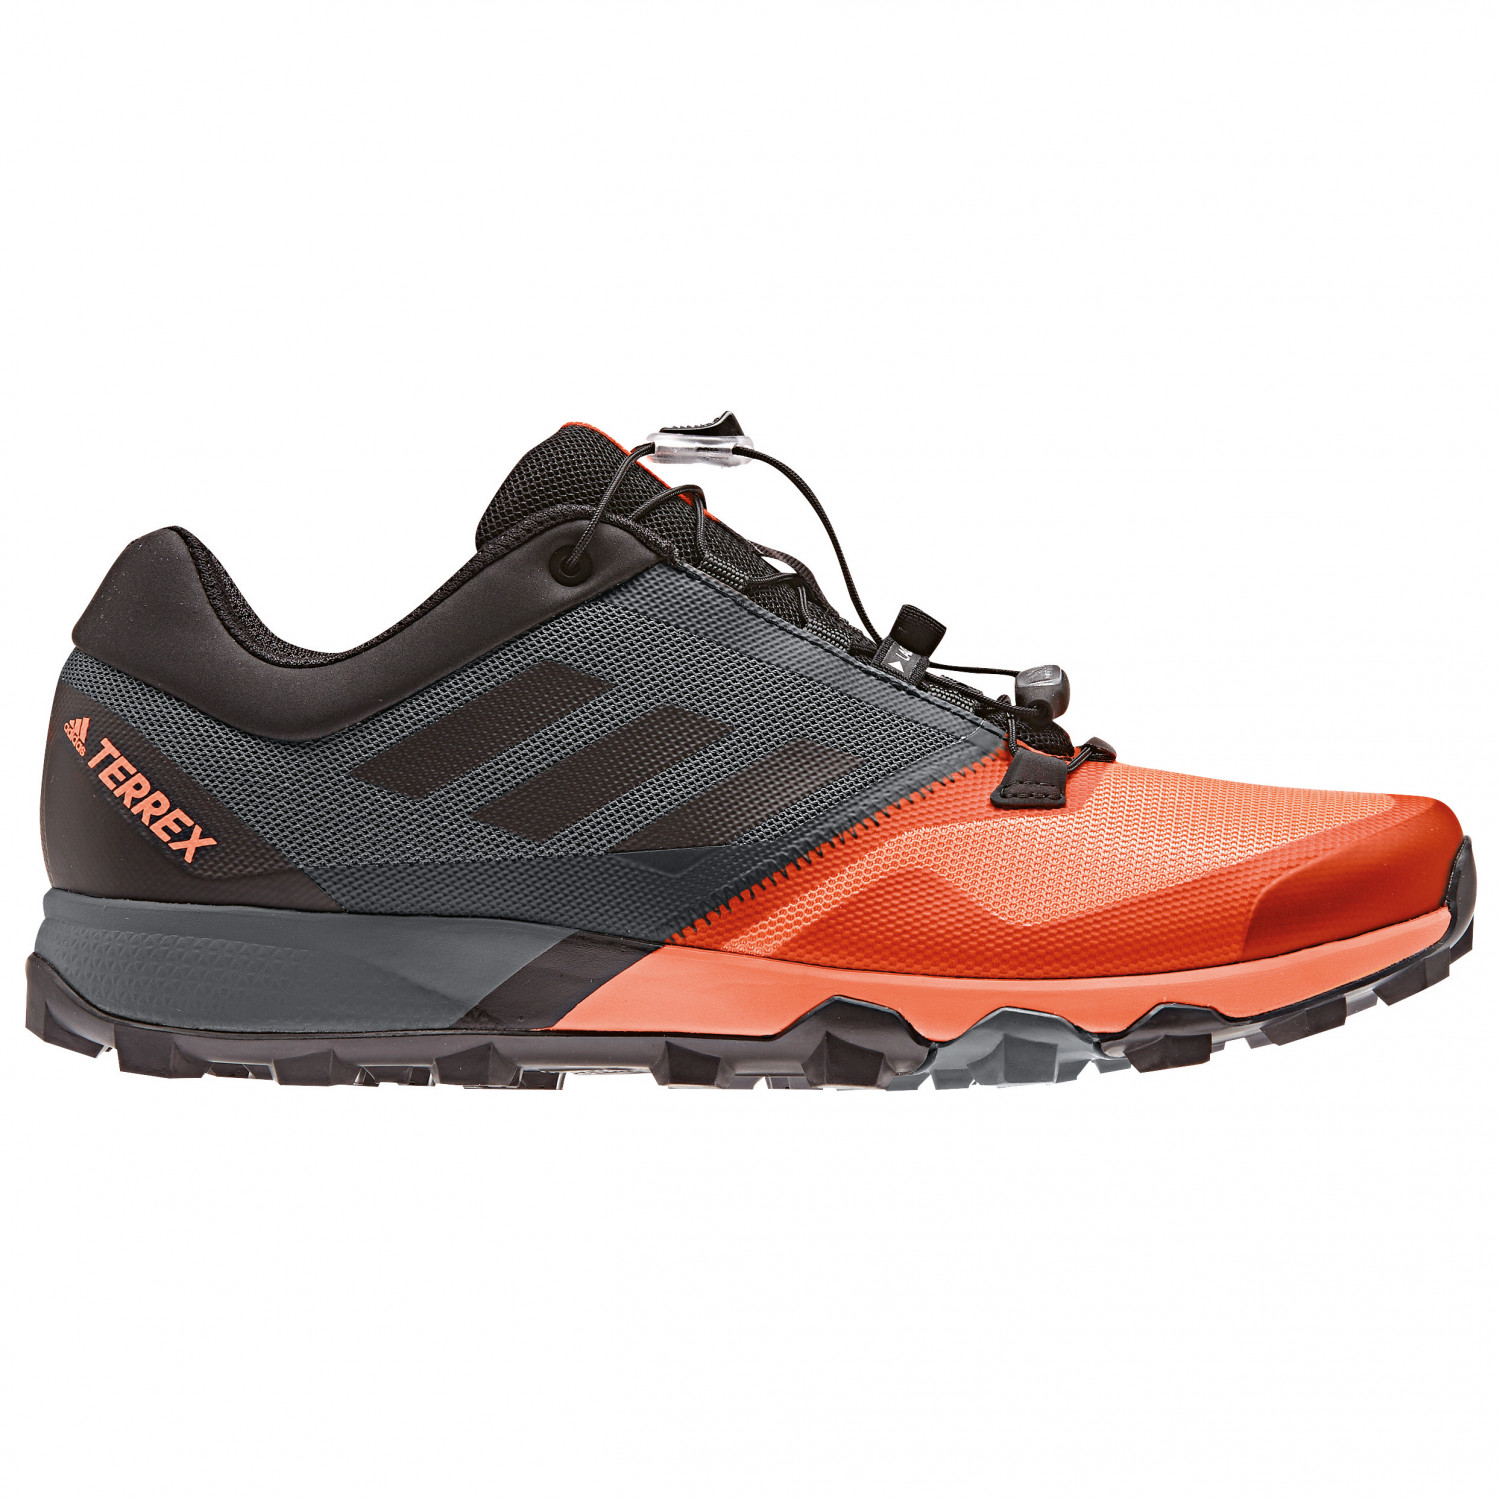 Shoes Terrex Delivery Men's Multisport Trailmaker Free Adidas Uk wtKd8Sq8U